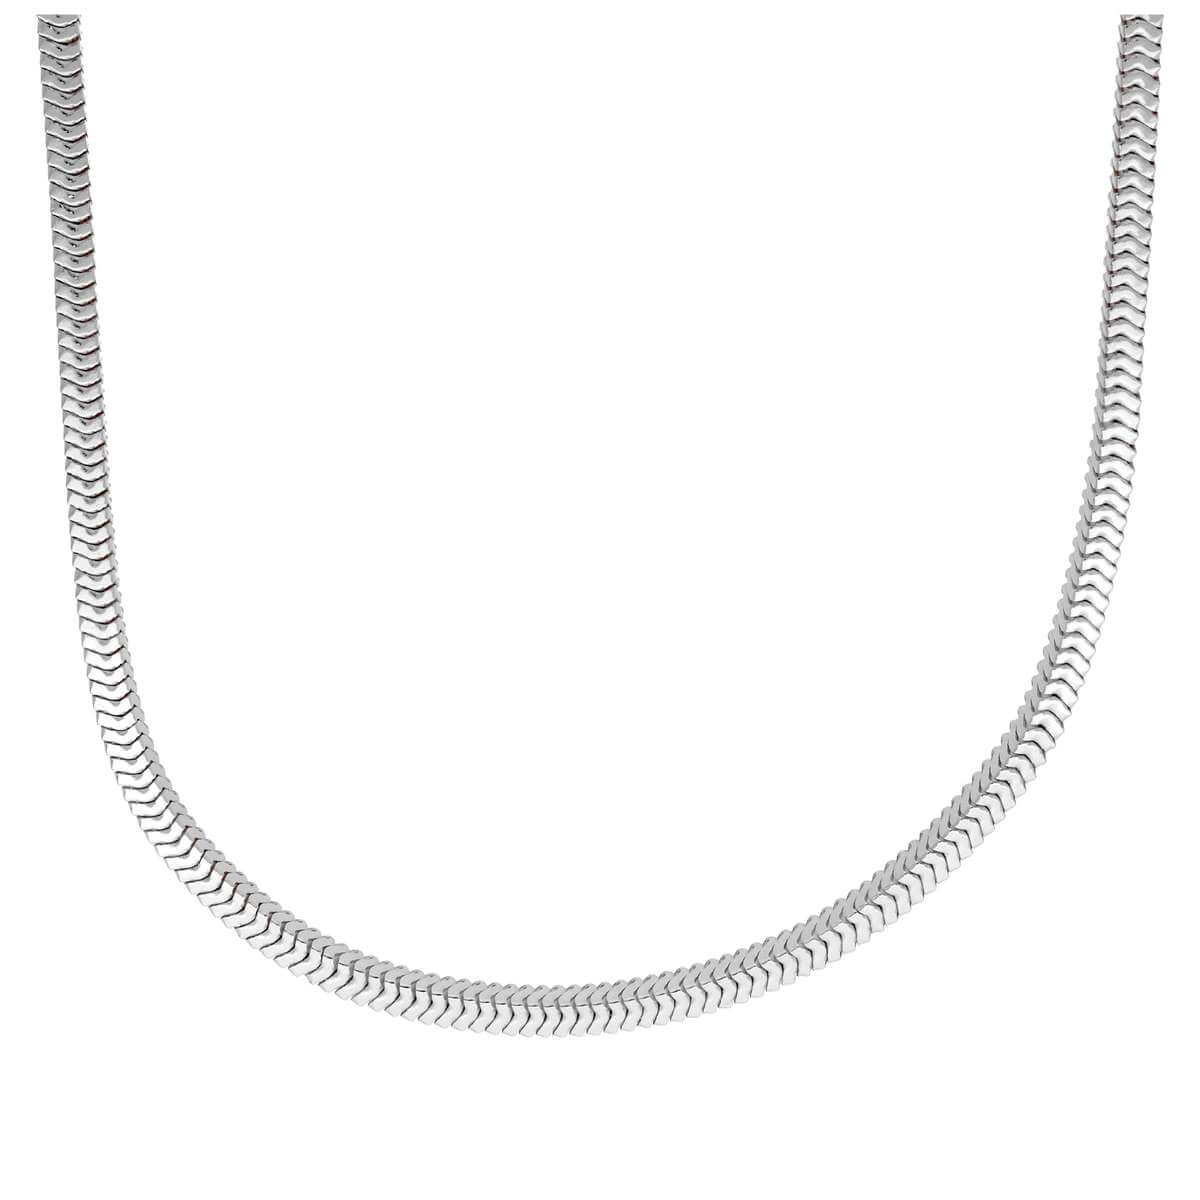 Sterling Silver Square Snake Chain Necklace 16 - 18 Inches